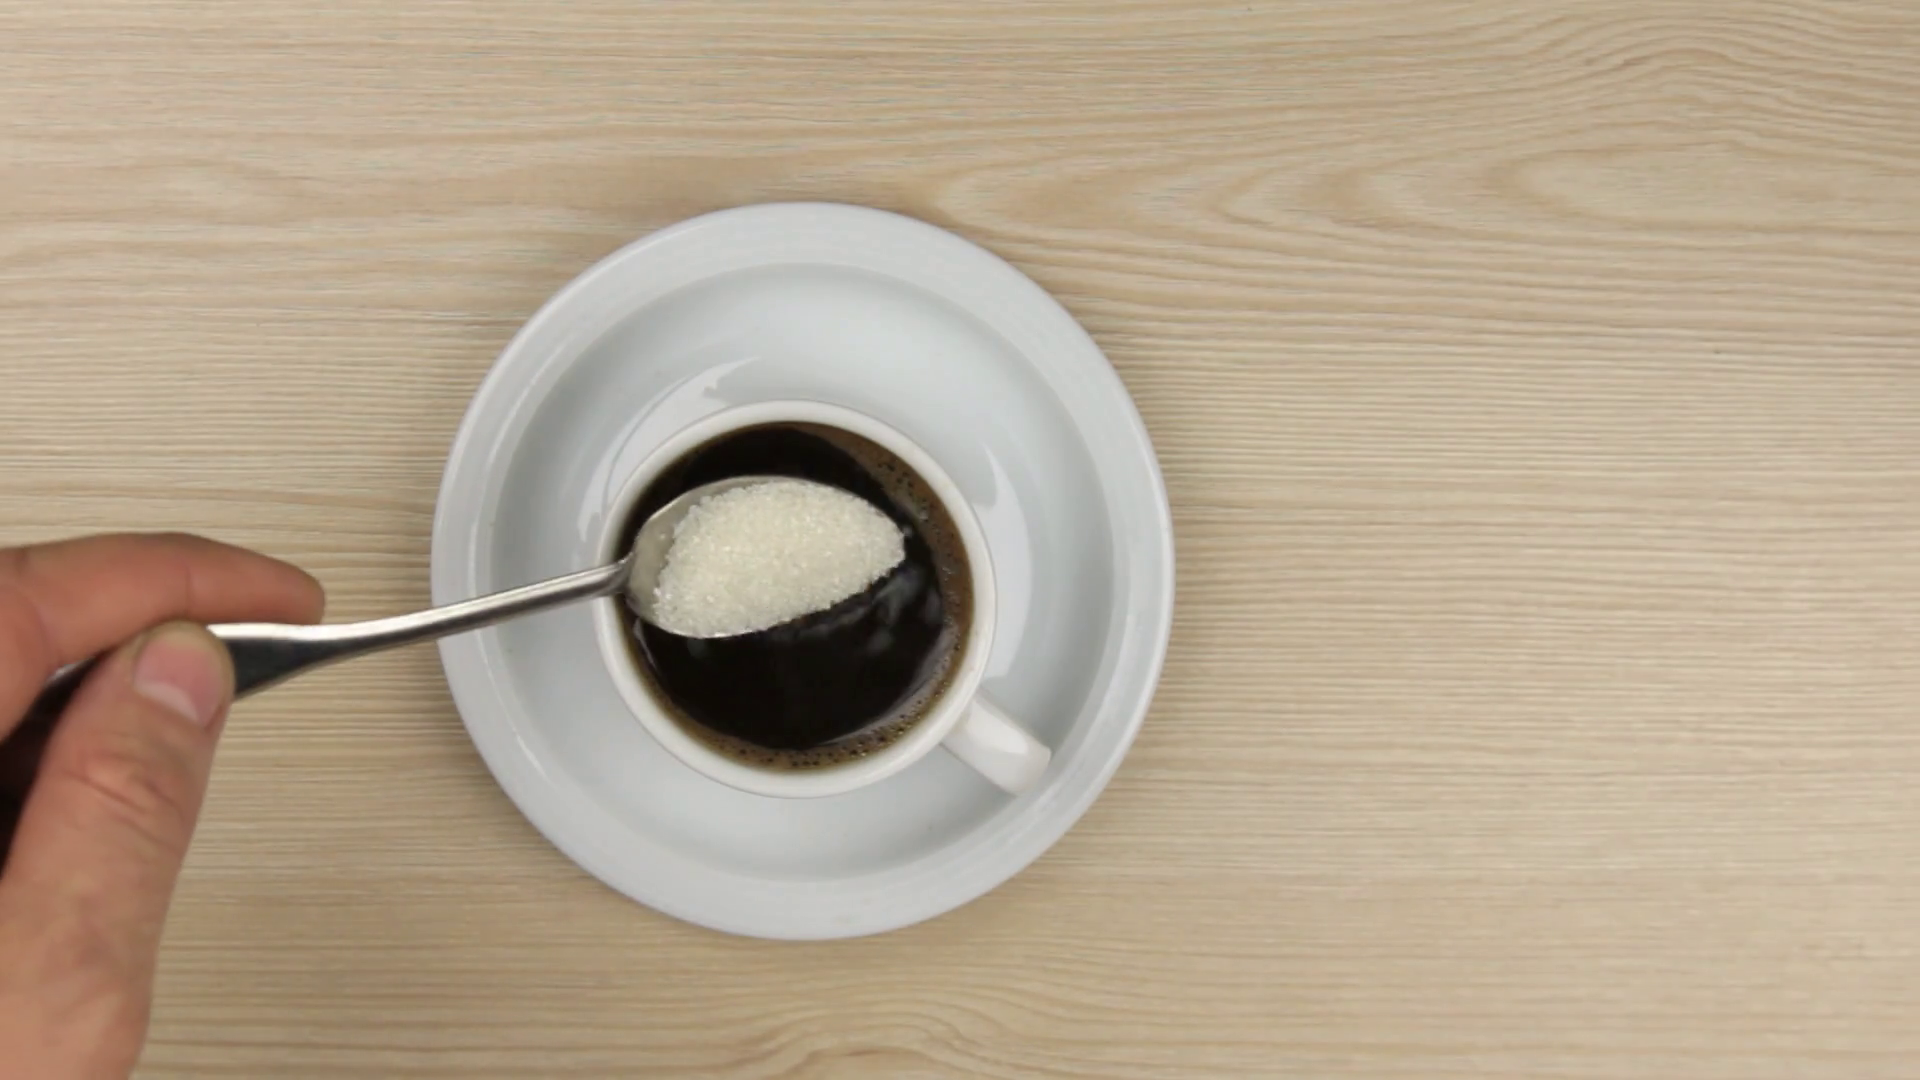 Coffee cup png top down. Hand putting spoon sugar